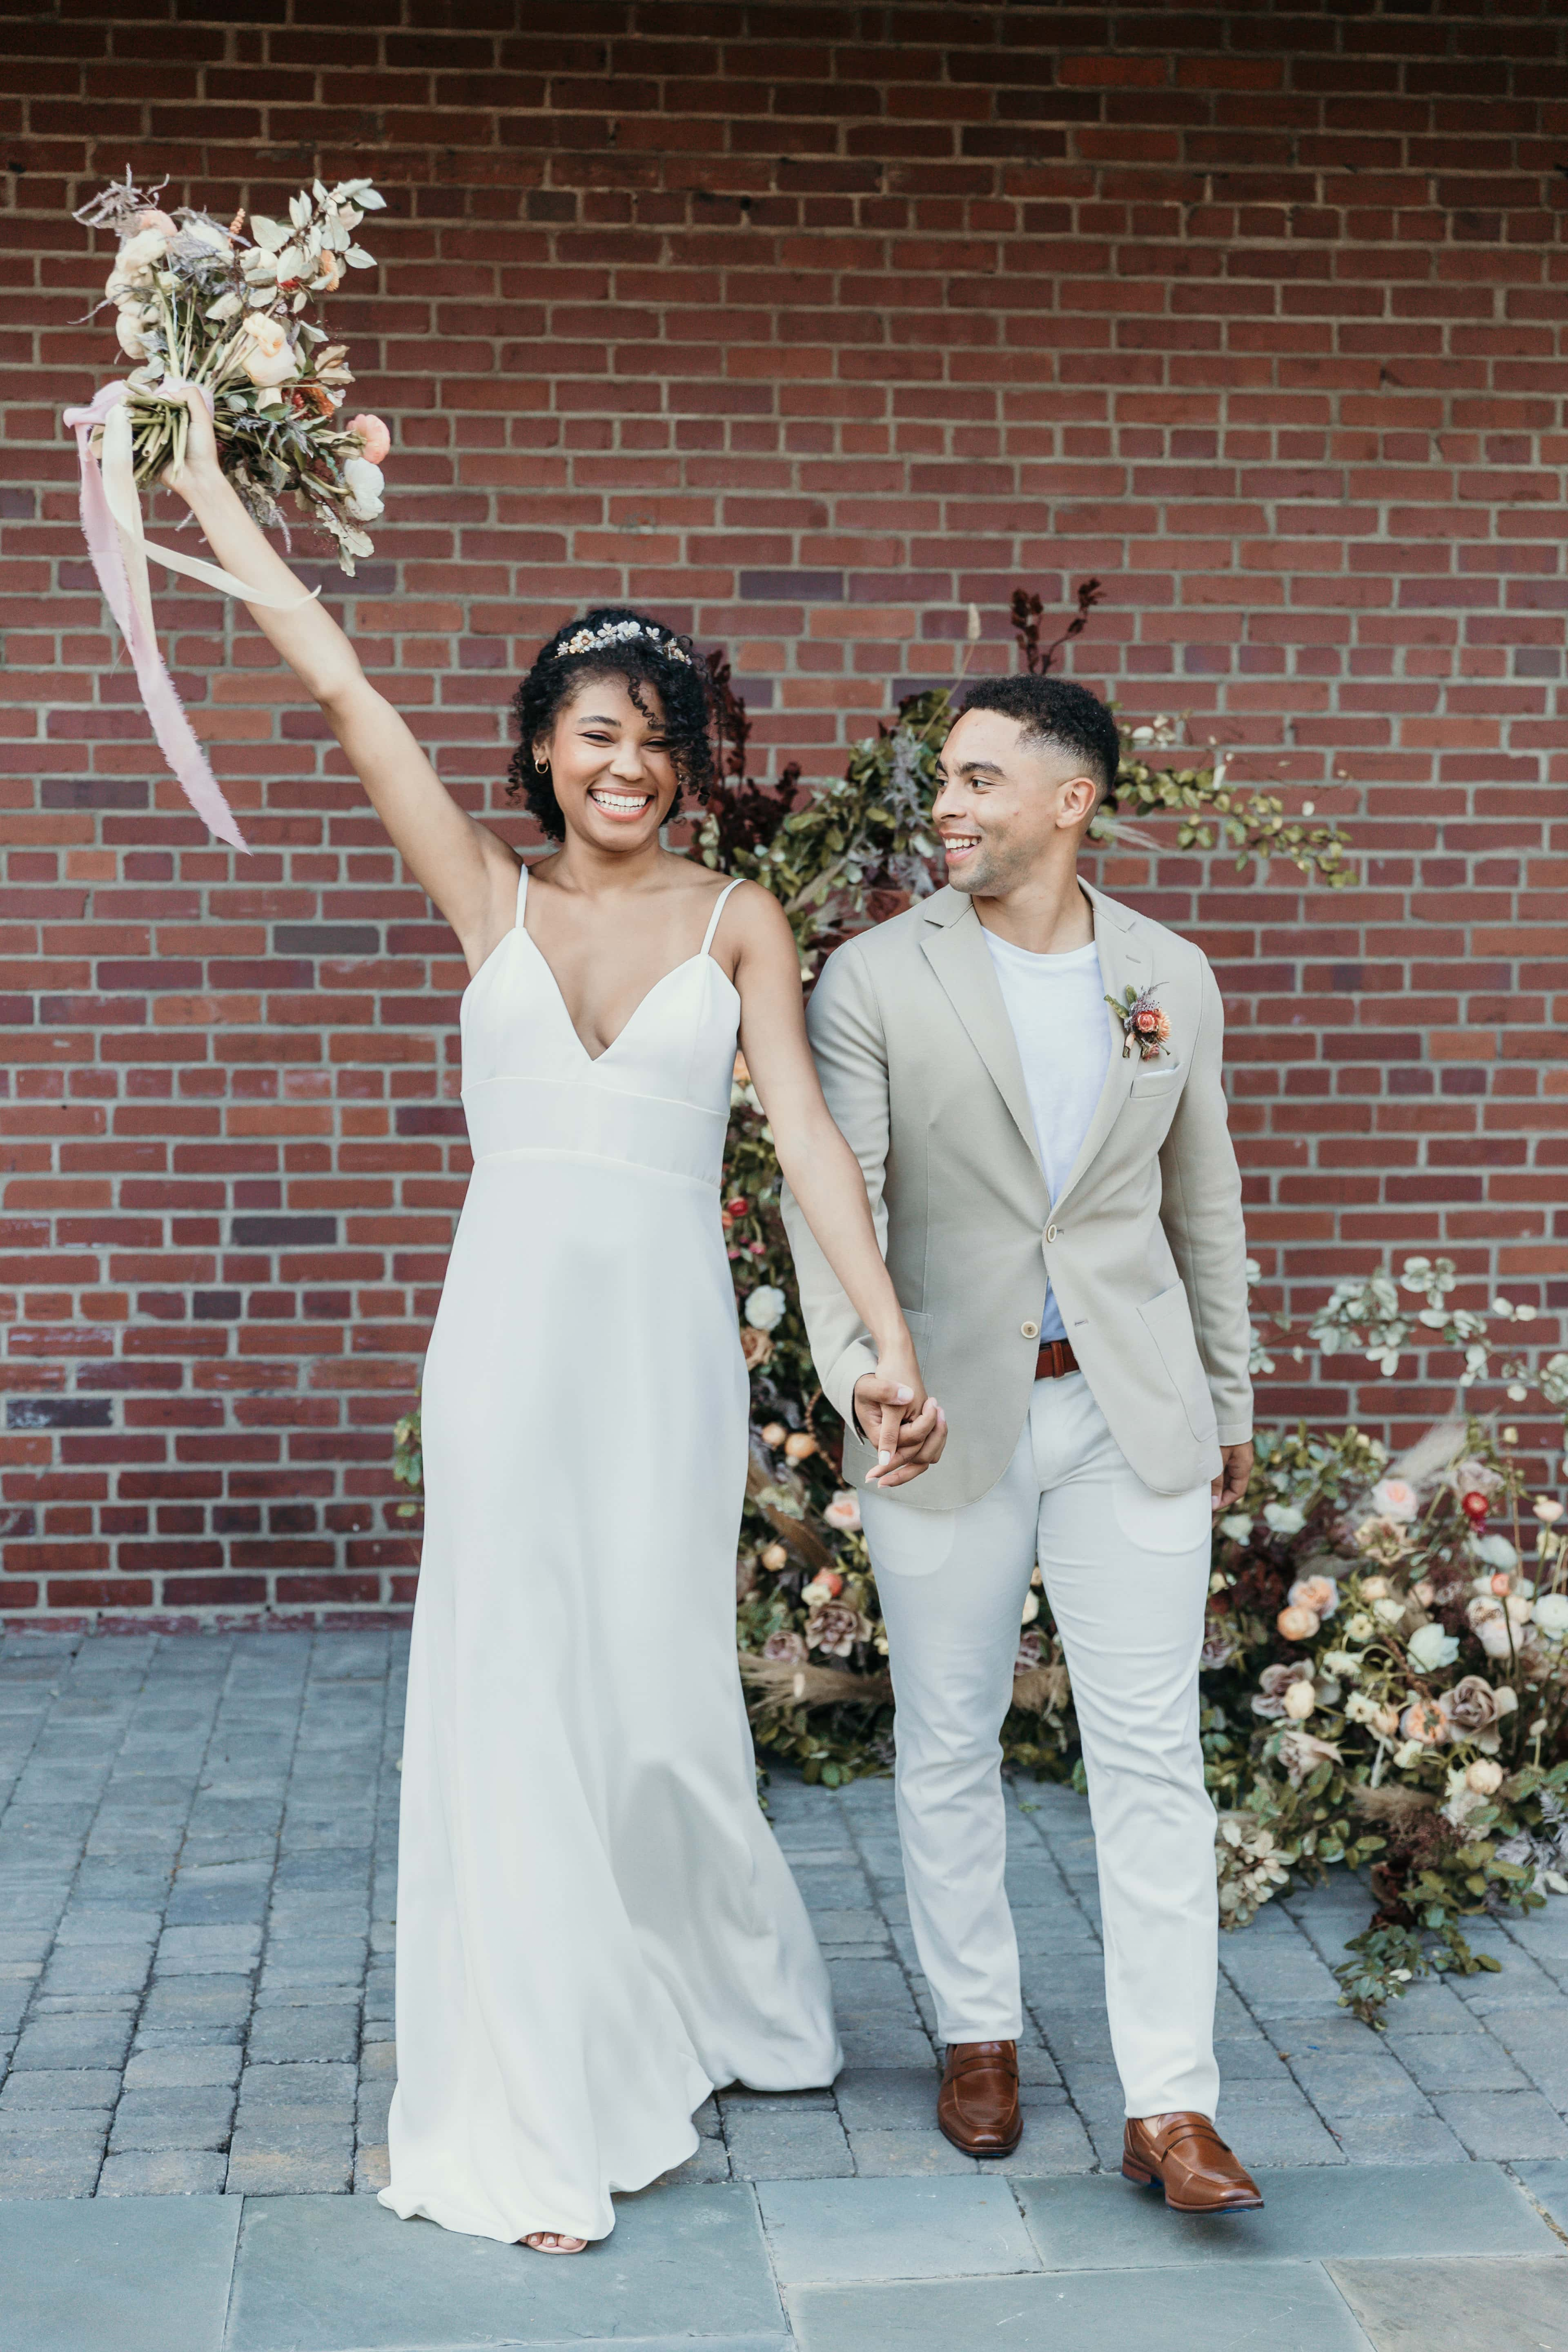 wedding photographer, a delighted bride holds groom's hand, her other hand holds a floral bouquet in the air in celebration